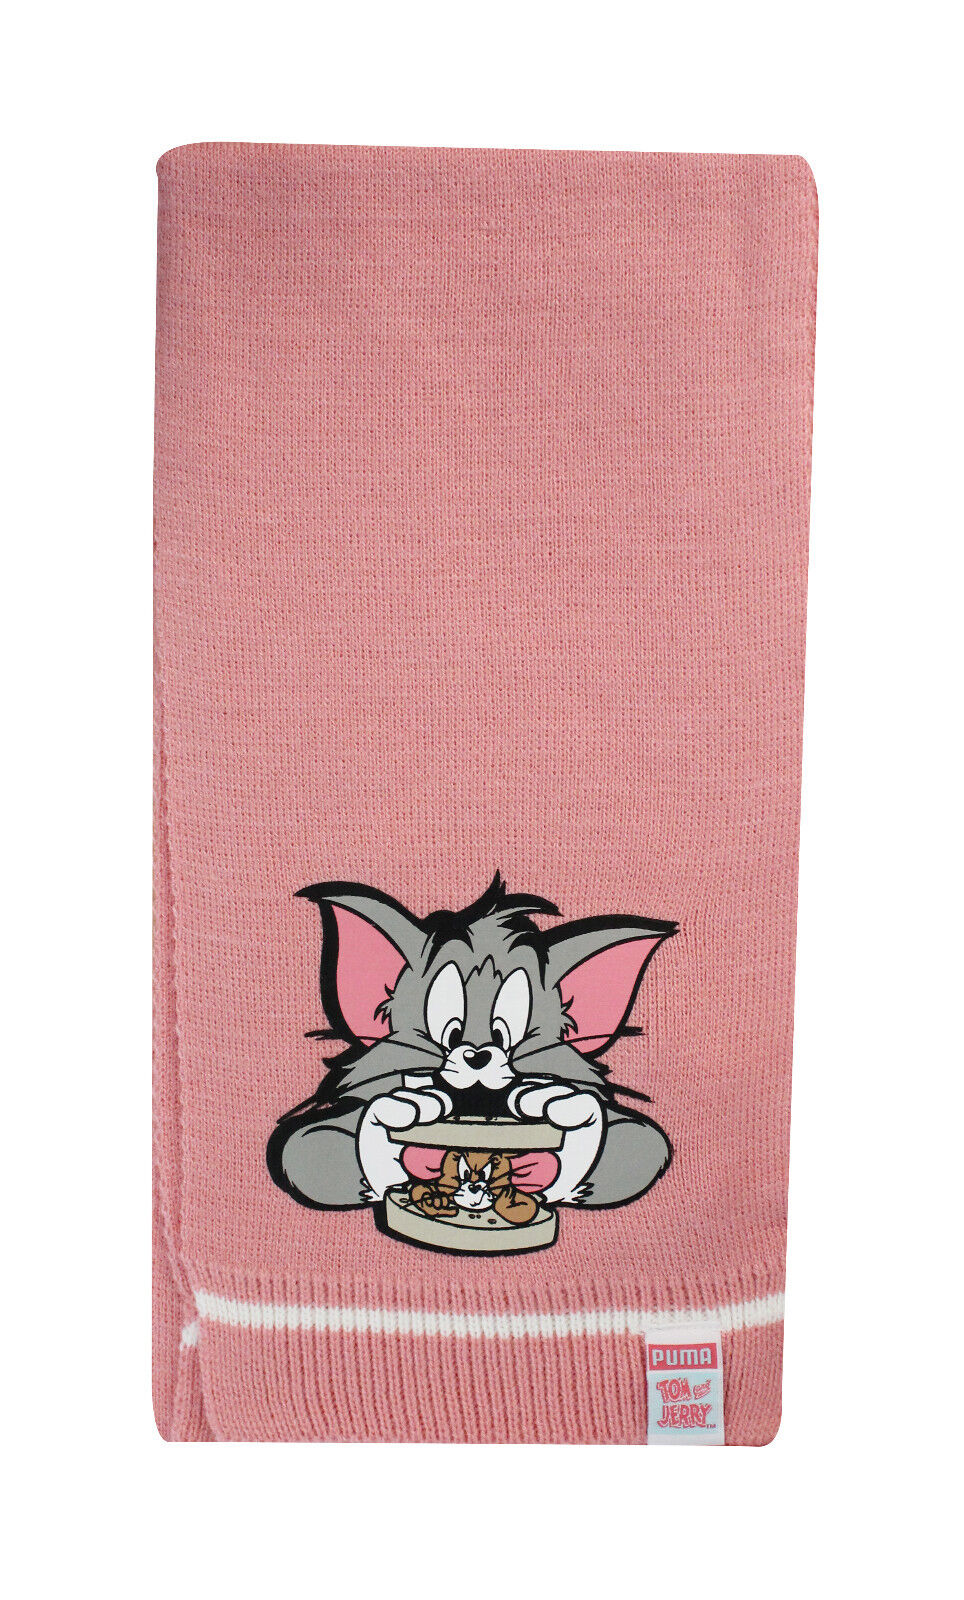 06f841fb91a5 Puma Active Knit Tom and Jerry Girls Kids Youths Scarf Pink 052805 ...